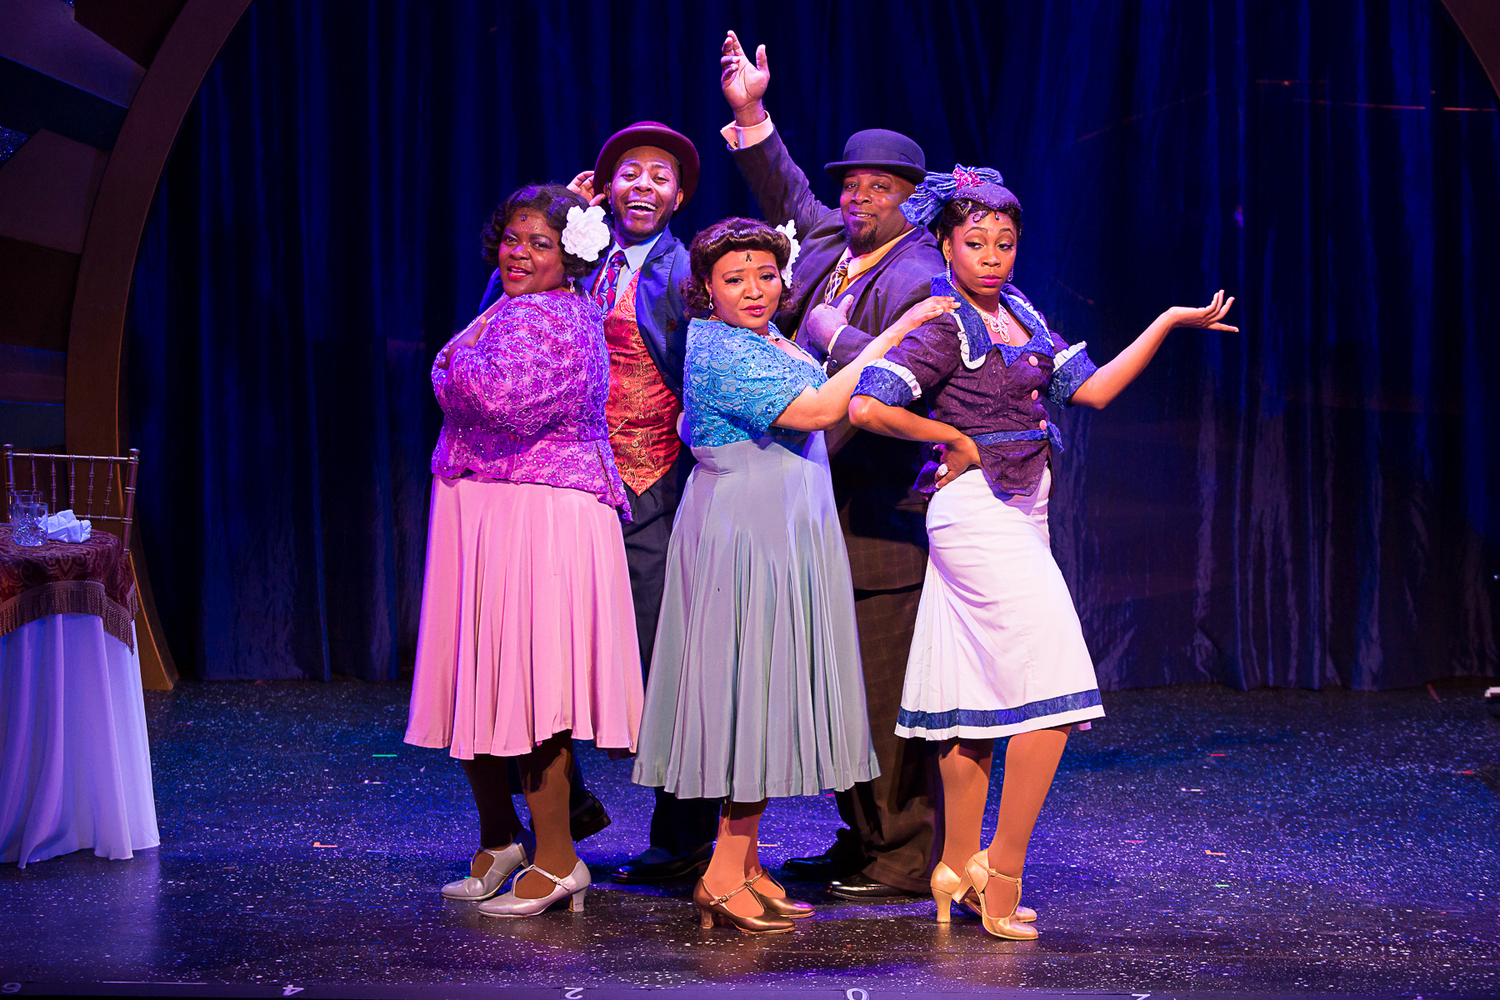 BWW Review: Theatre By the Sea's AIN'T MISBEHAVIN' Gets the Joint Jumpin'